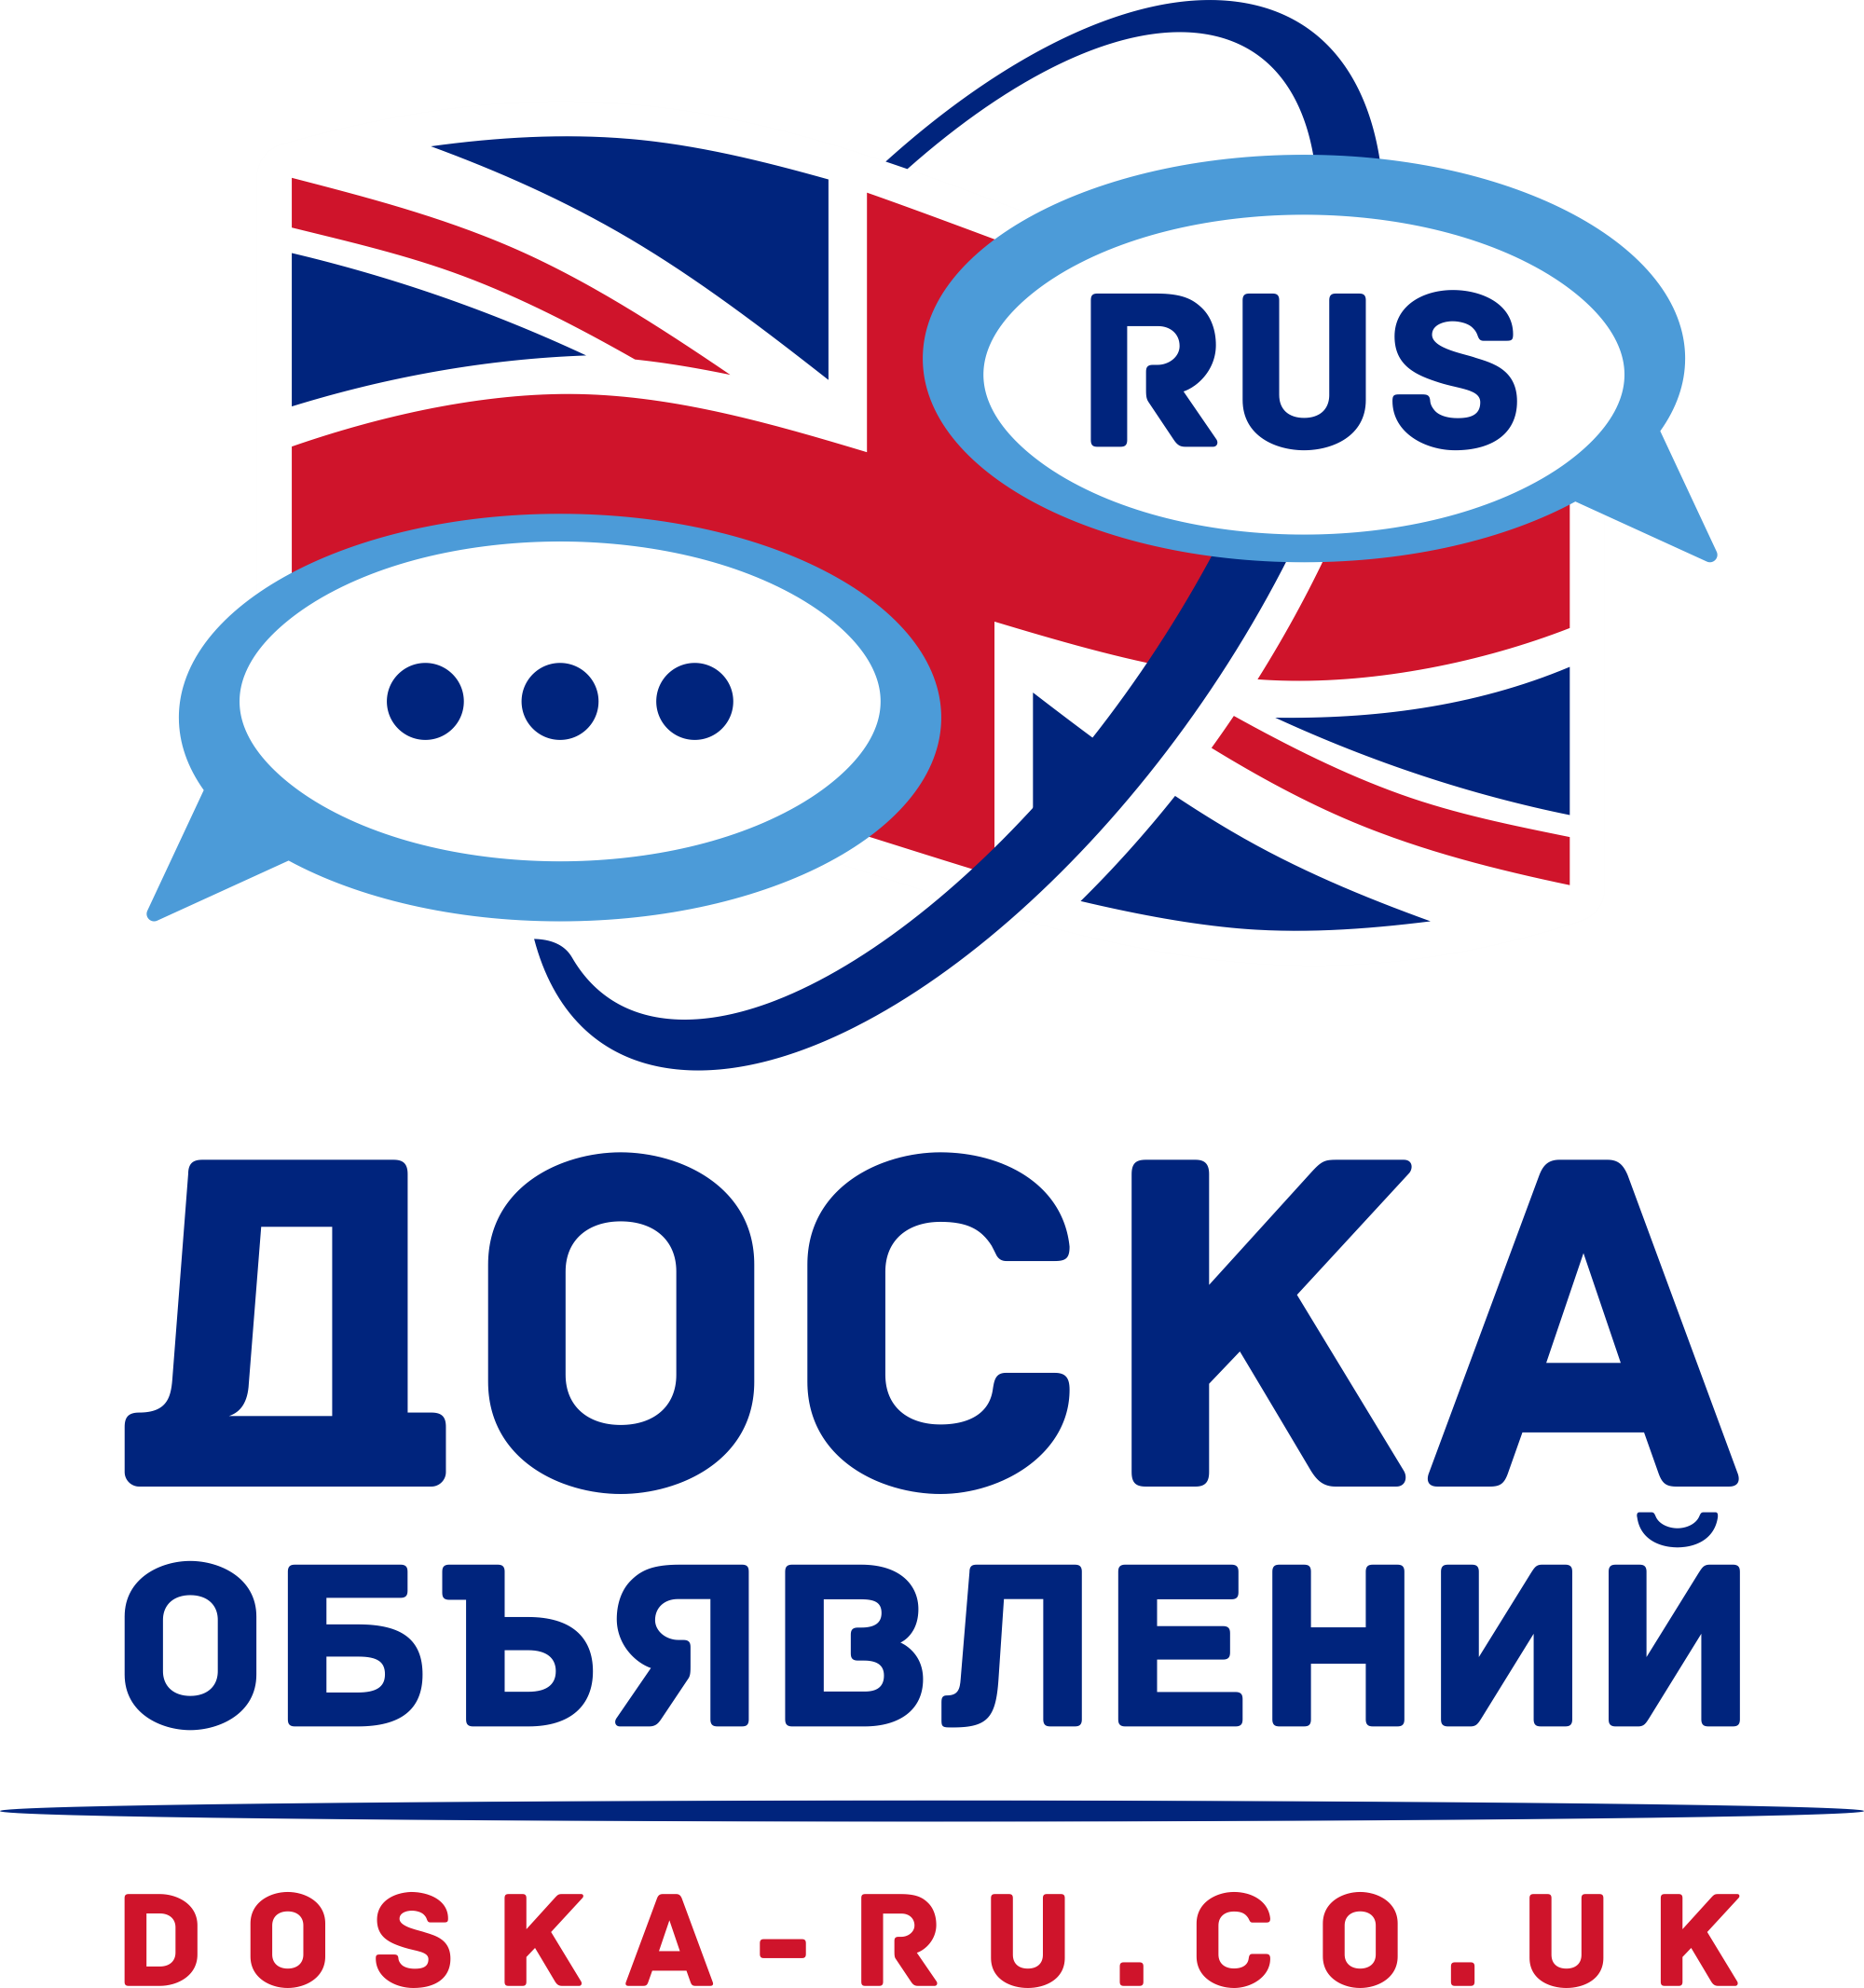 info@doska-ru.co.uk